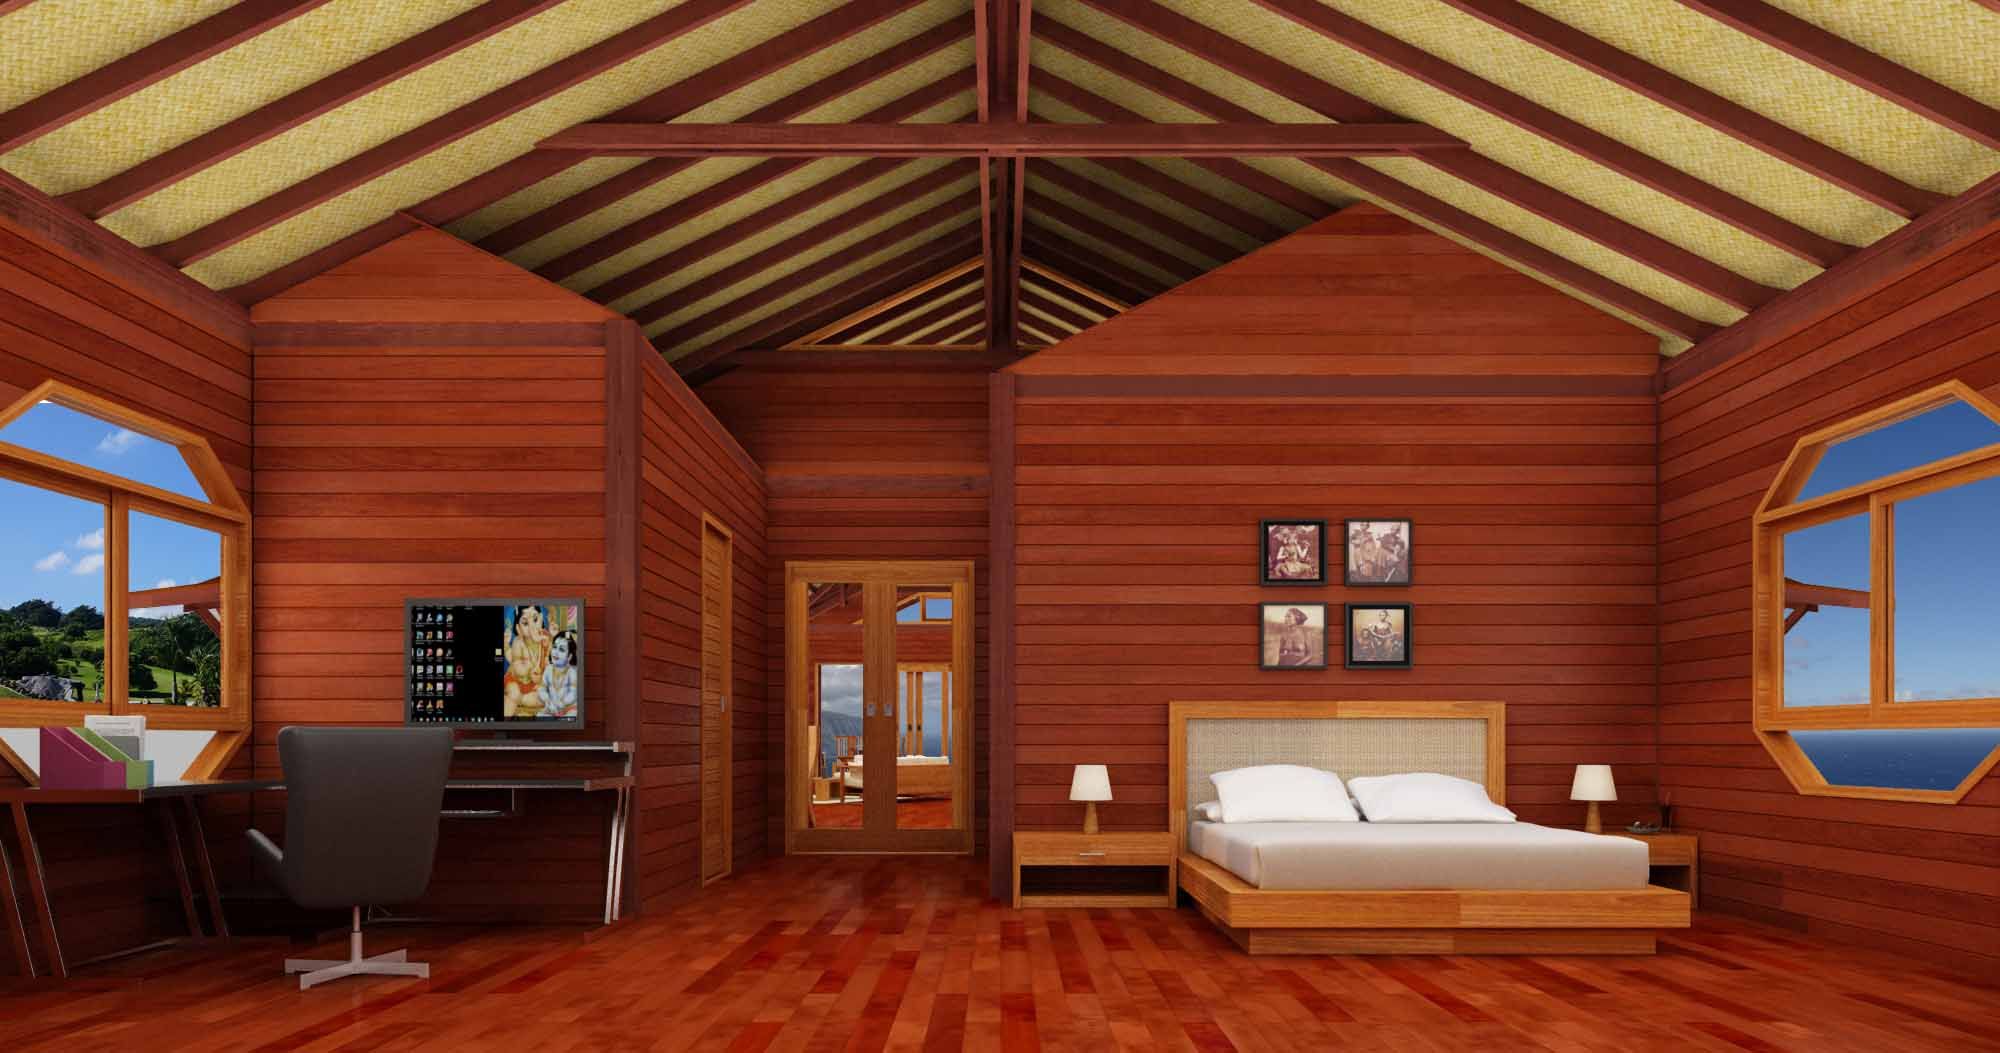 View Floor Plans of our Bali Buddha Prefab Home Design